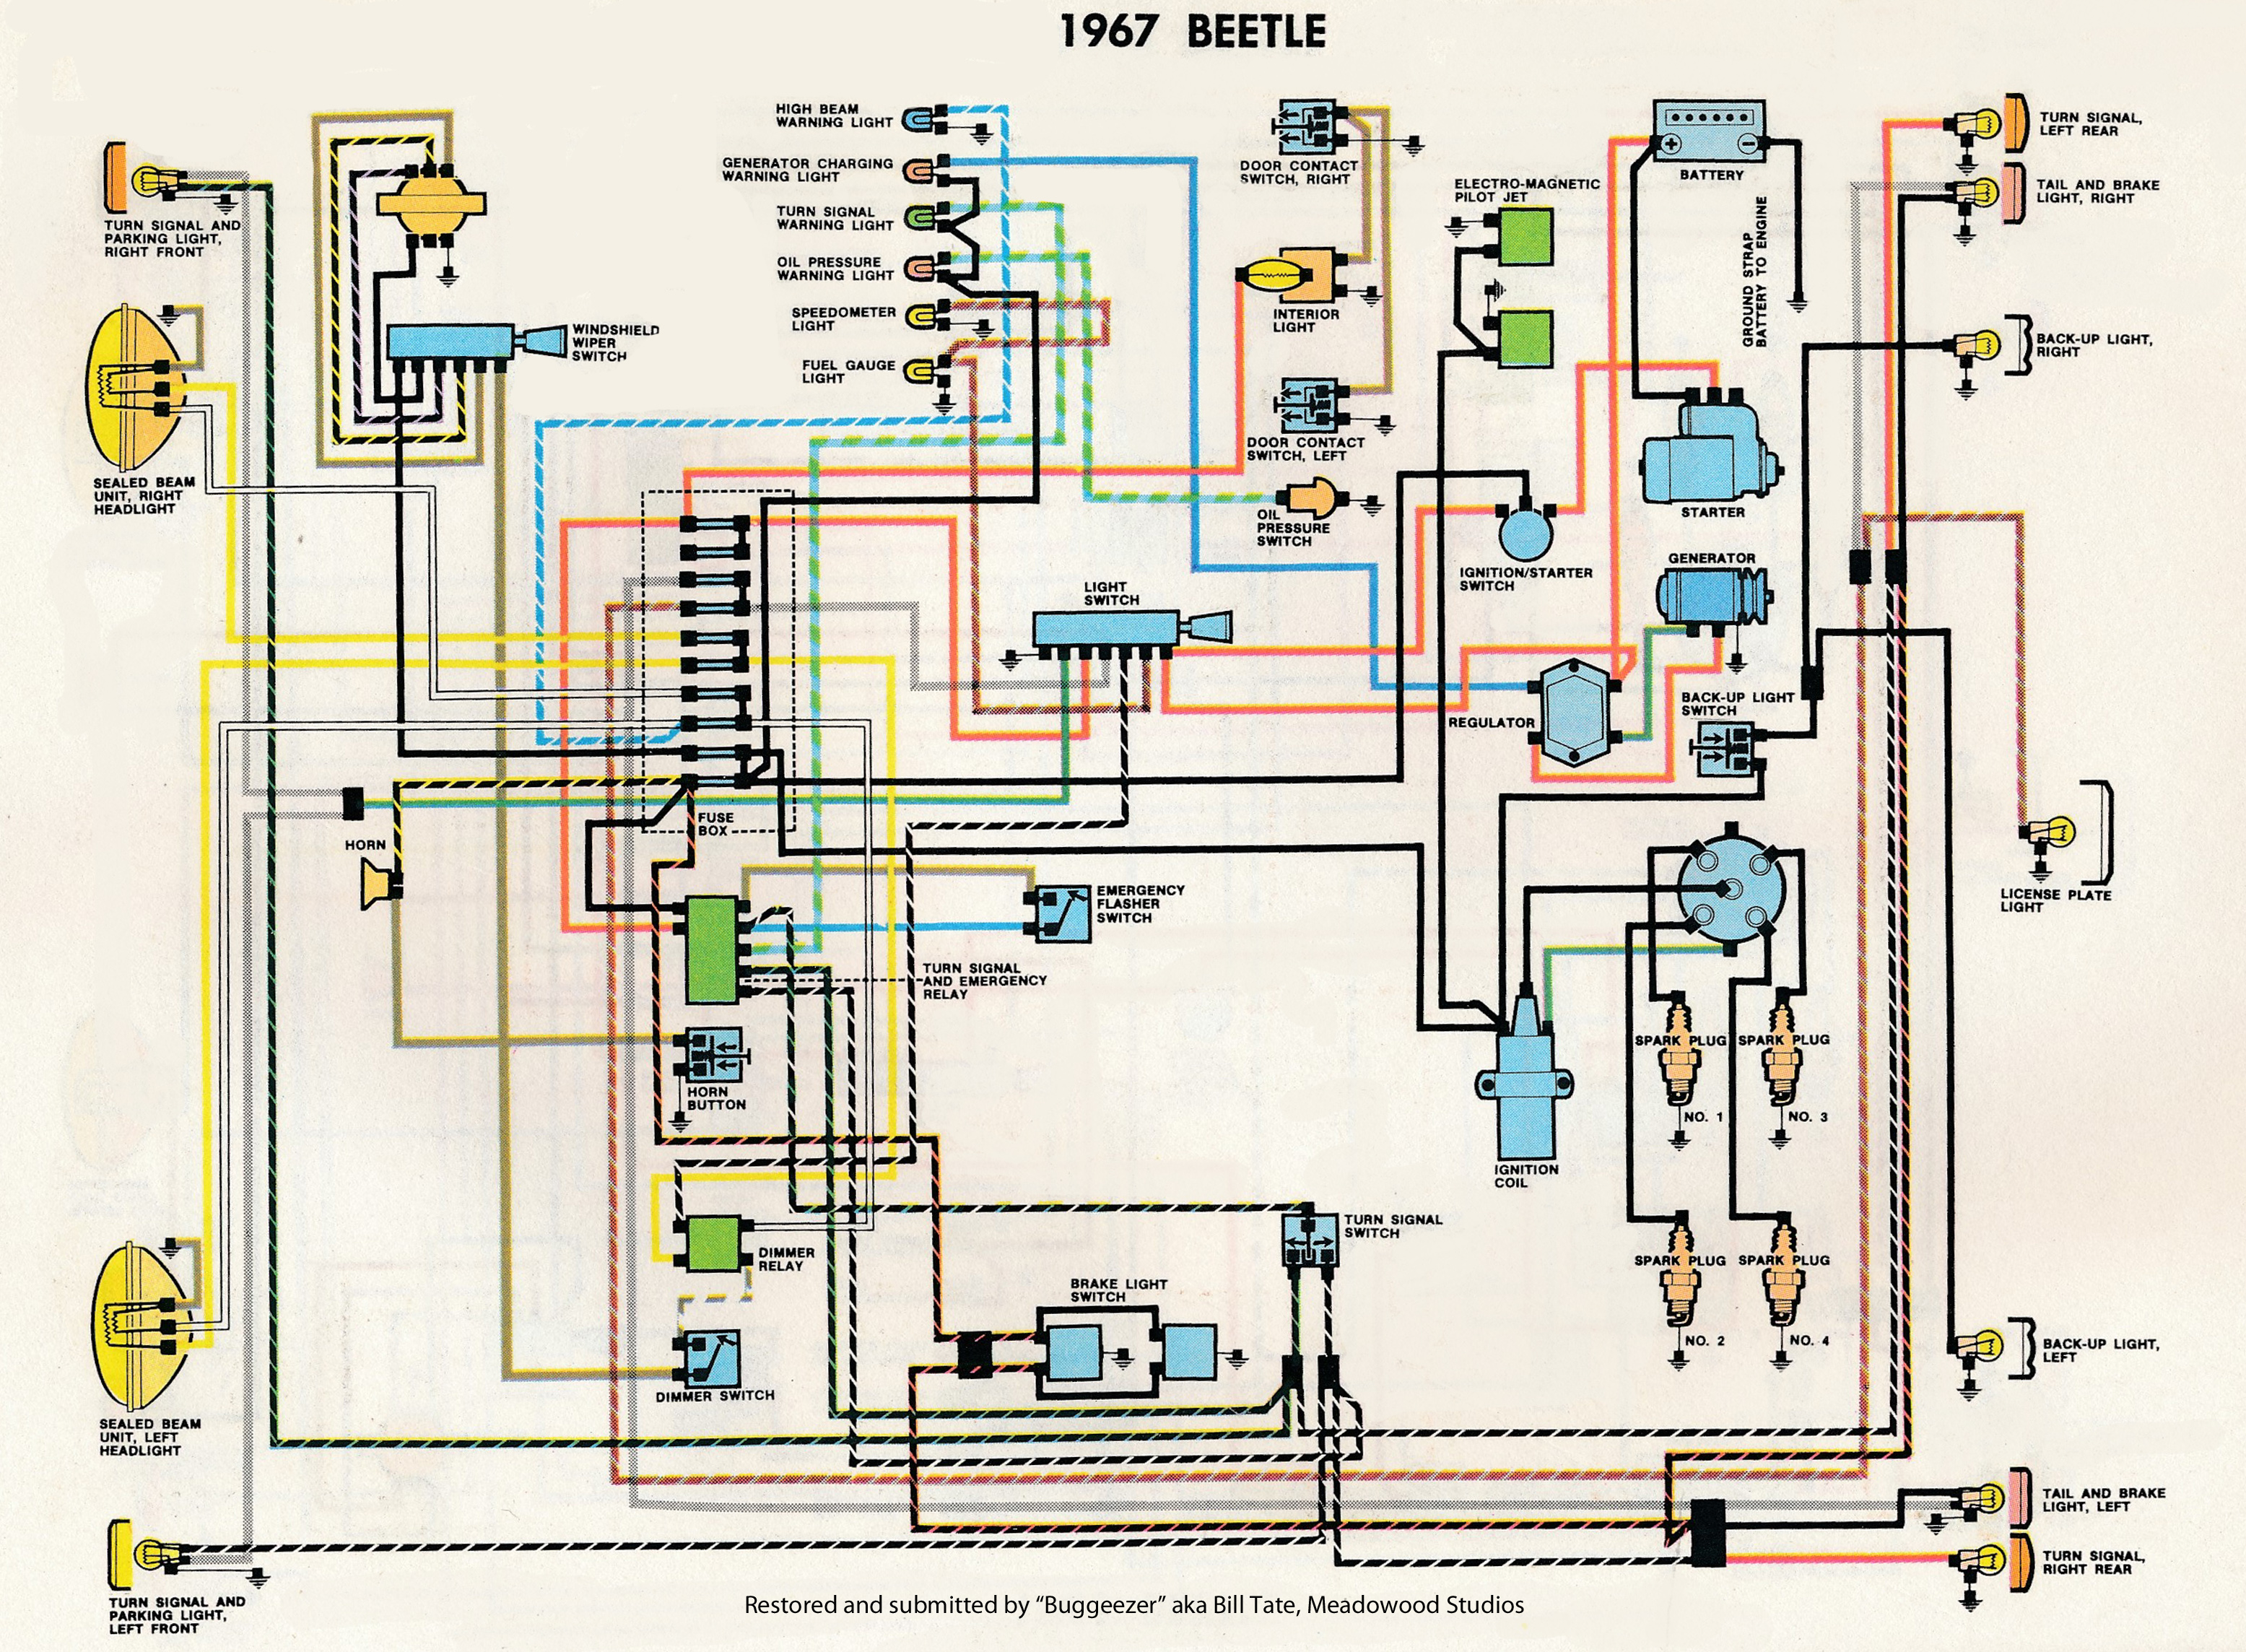 Beetle_1967_Clymers thesamba com type 1 wiring diagrams vw engine wiring diagram at nearapp.co